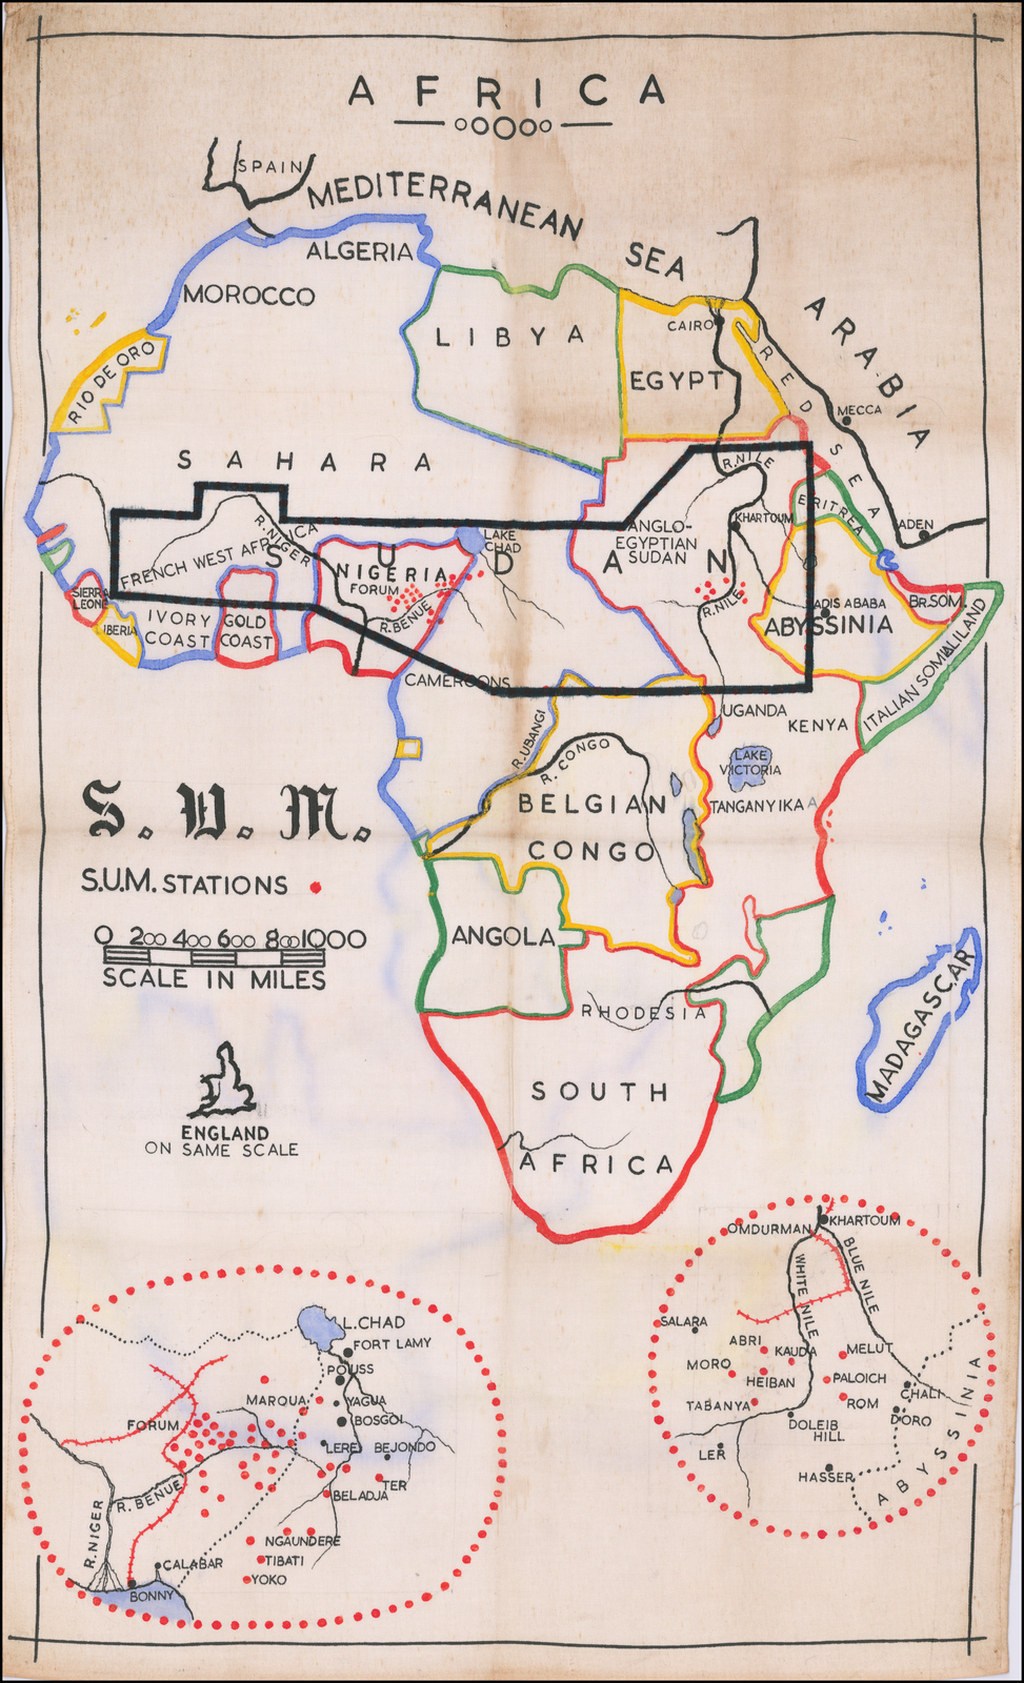 Africa S.U.M. Stations By Sudan United Mission